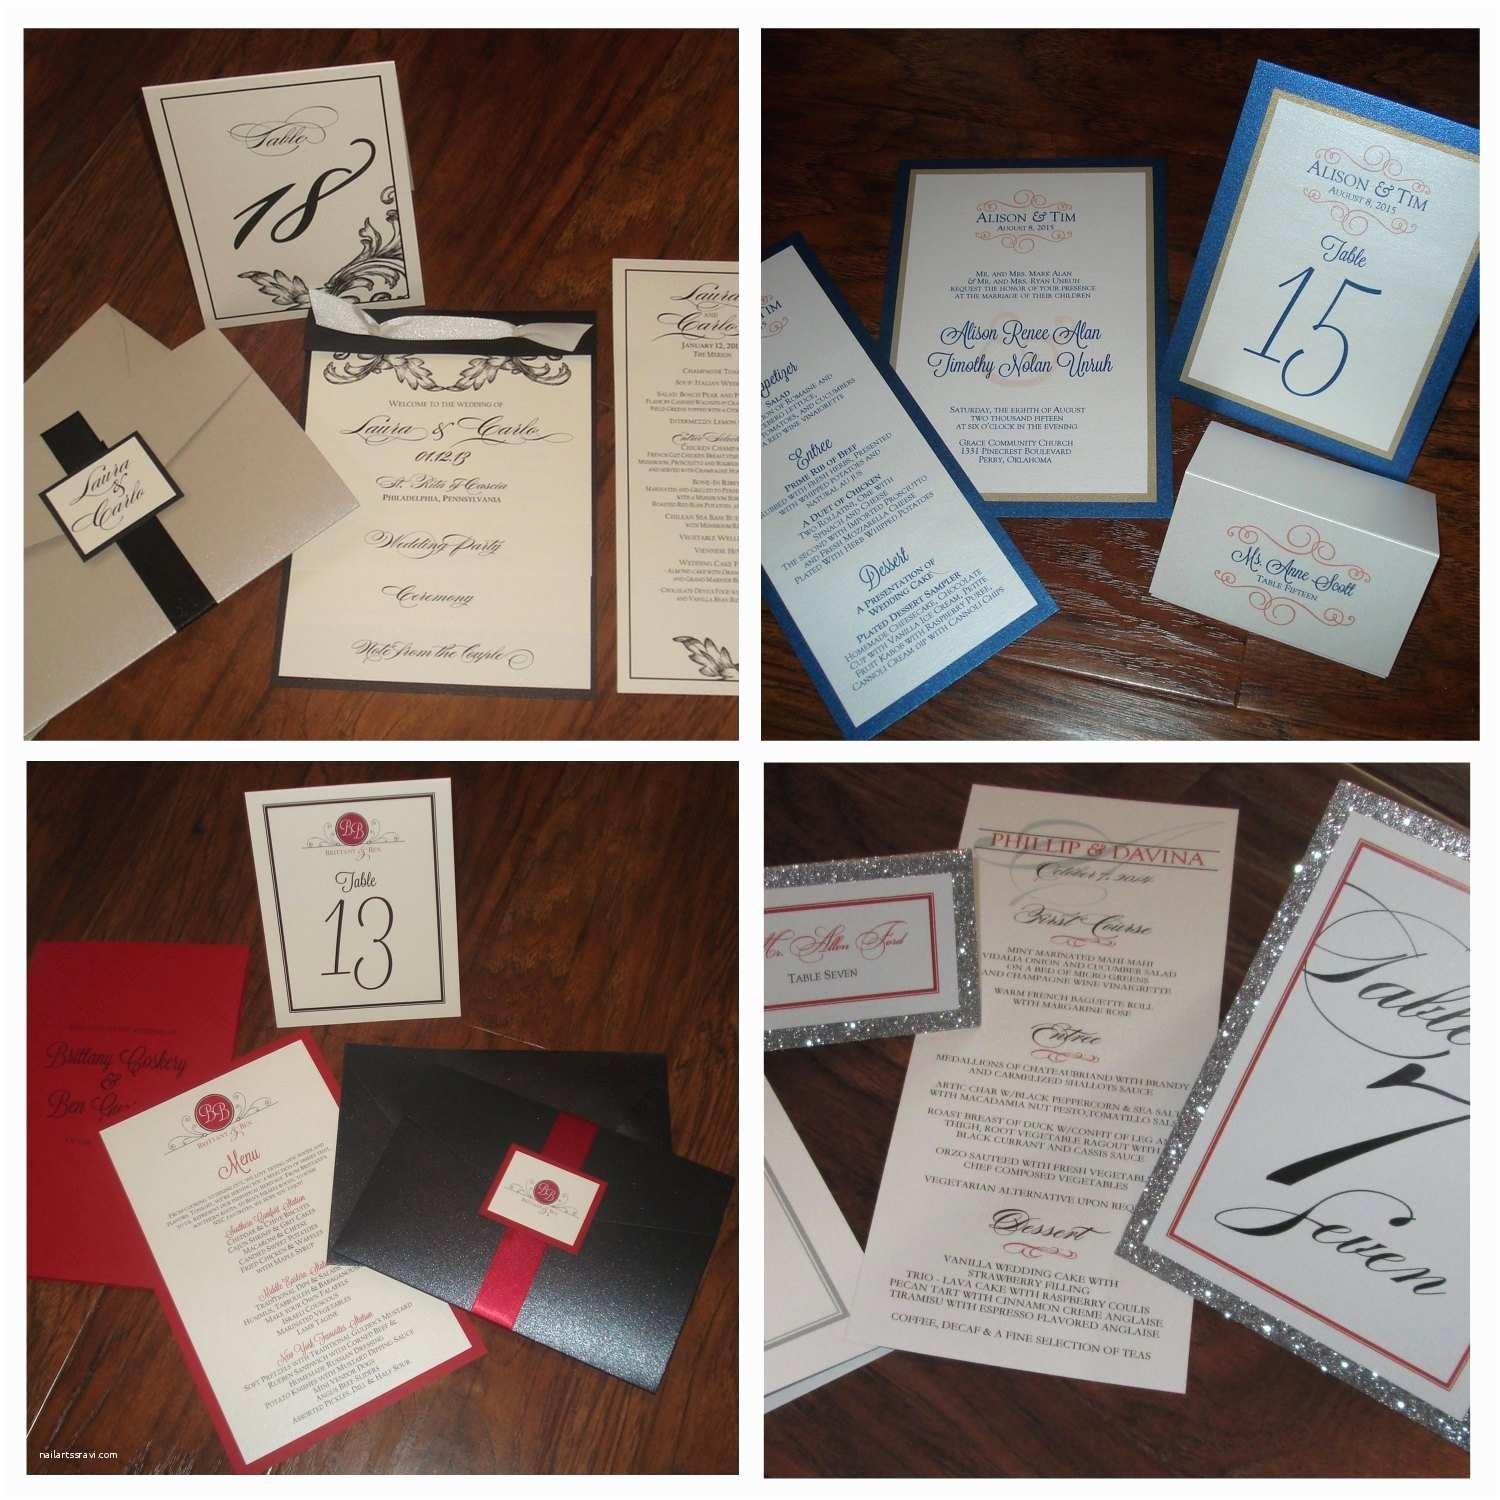 Make Your Own Wedding Invitations software Design Your Own Wedding Stationery – Epaperheart